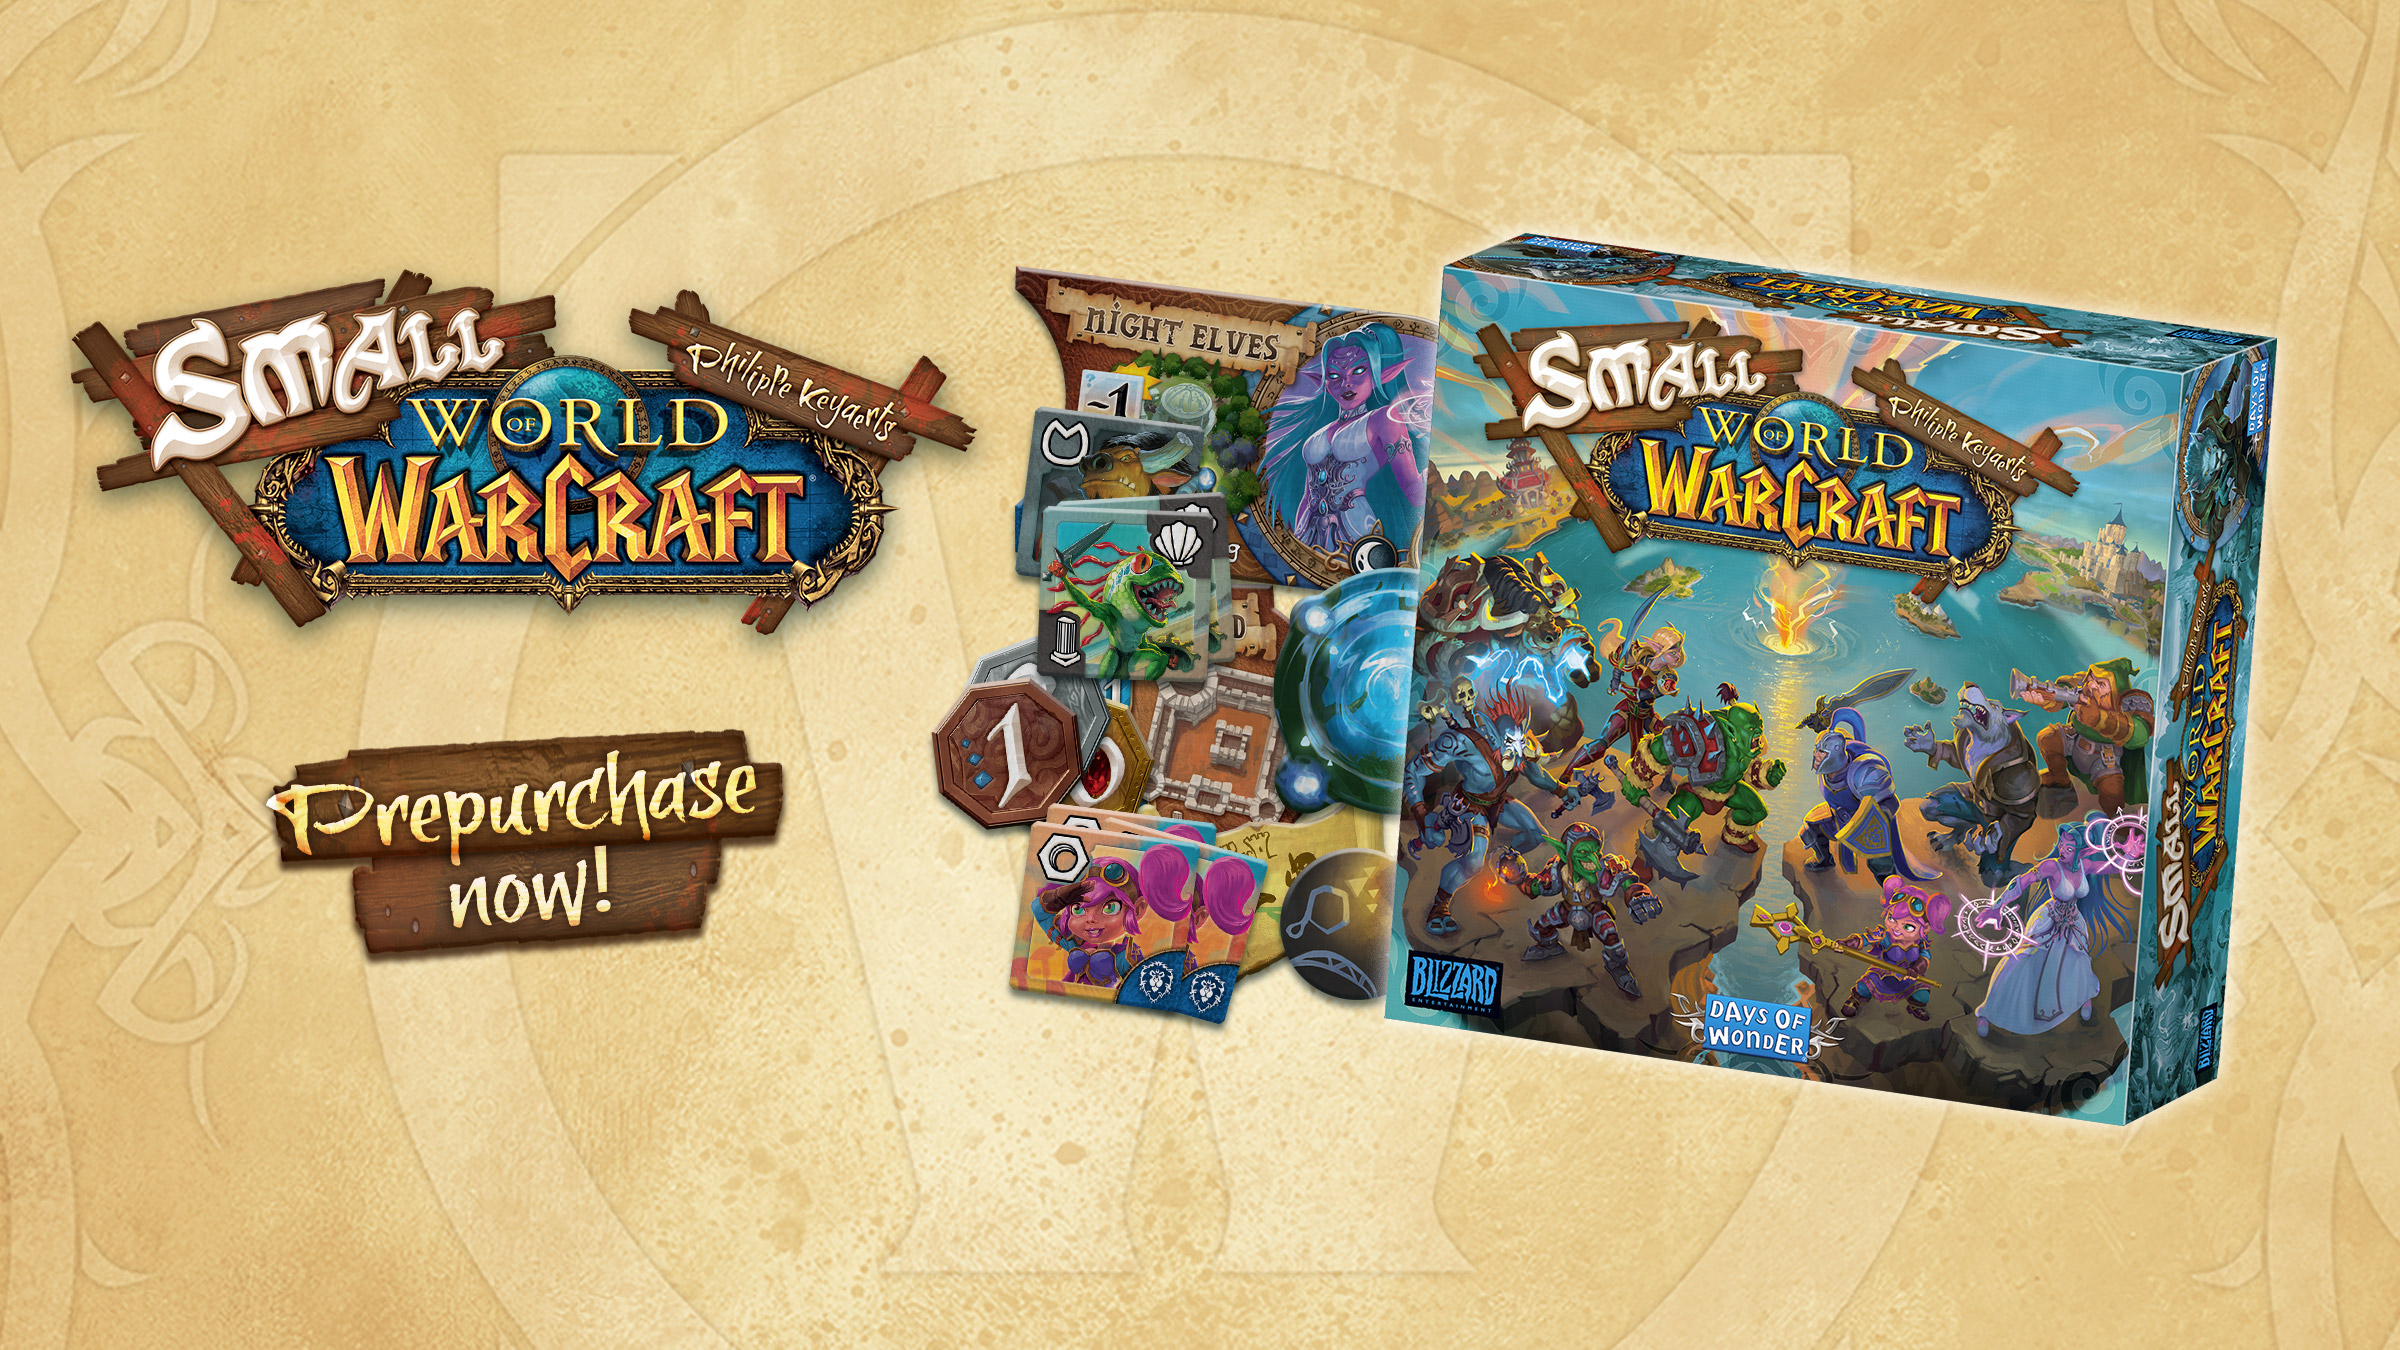 Small World of Warcraft now available for pre-purchase